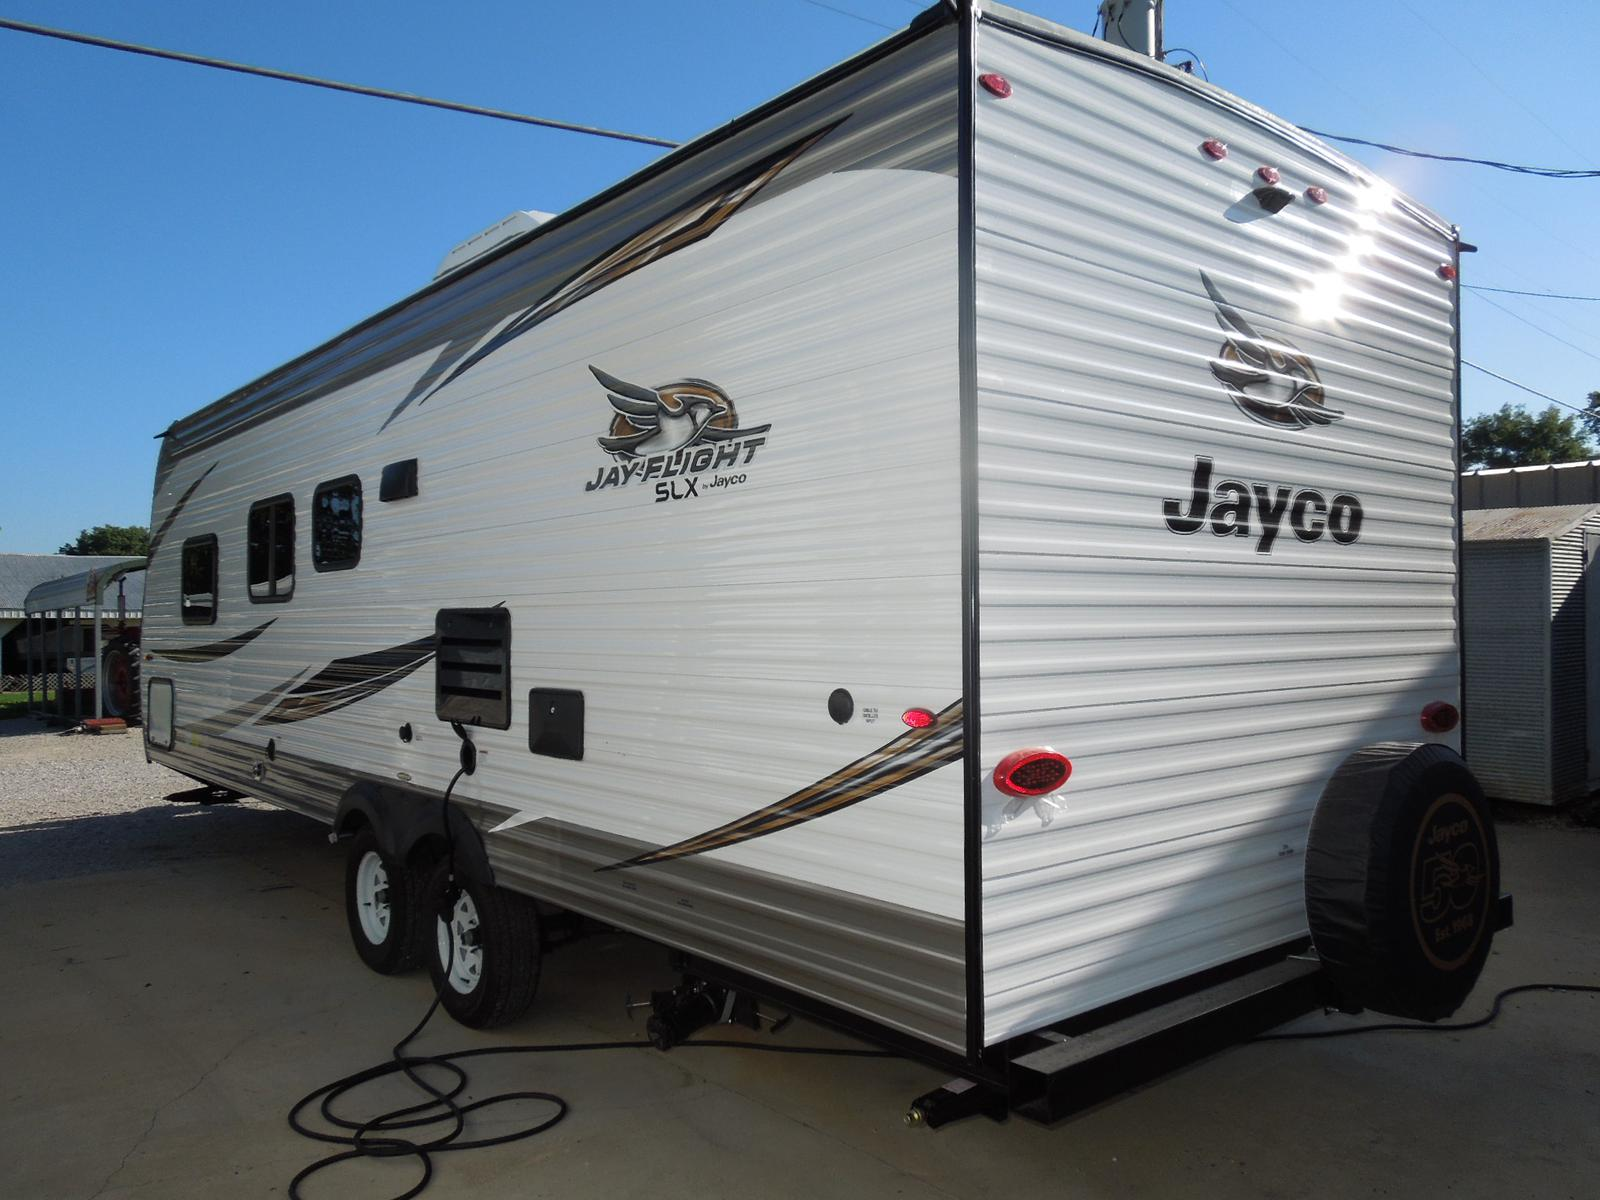 2019 Jay Flight By Jayco 264bh Slx For Sale In Vandalia Il Mid Tv Wiring Diagram State Camper Sales 618 283 4396